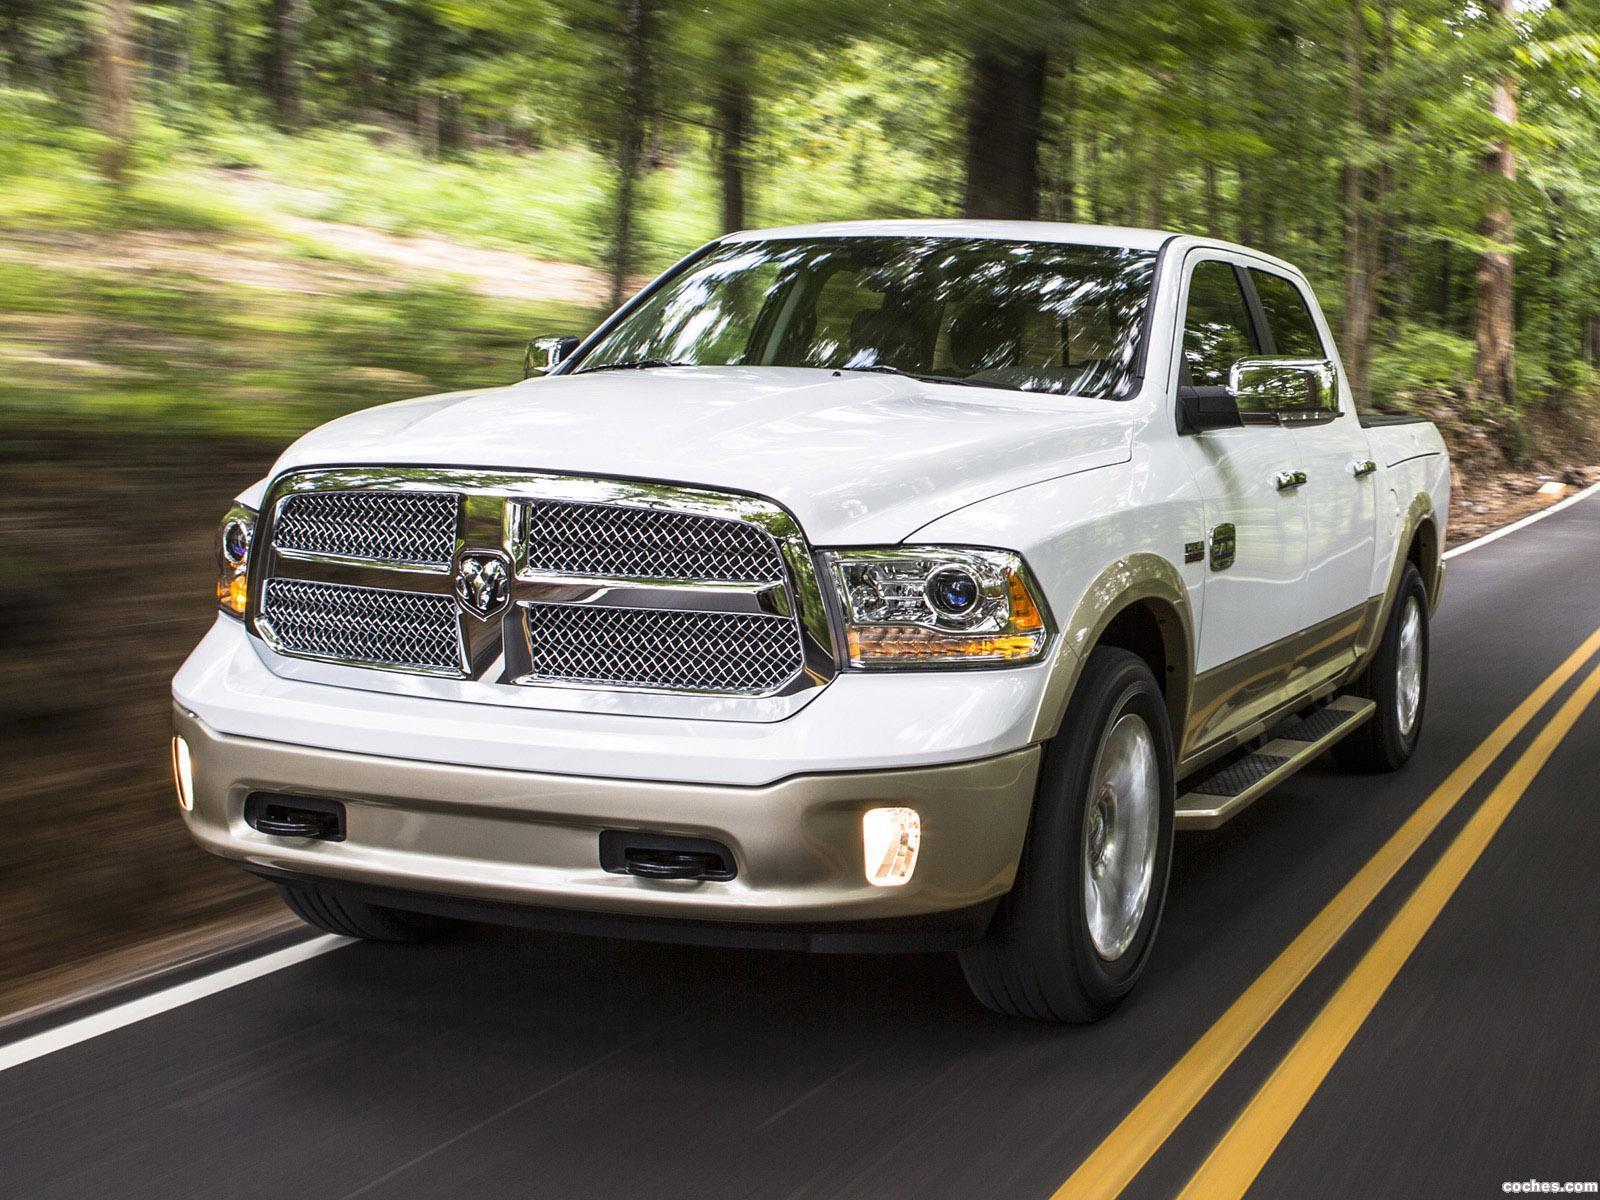 2013 Dodge Ram 1500 Lifted